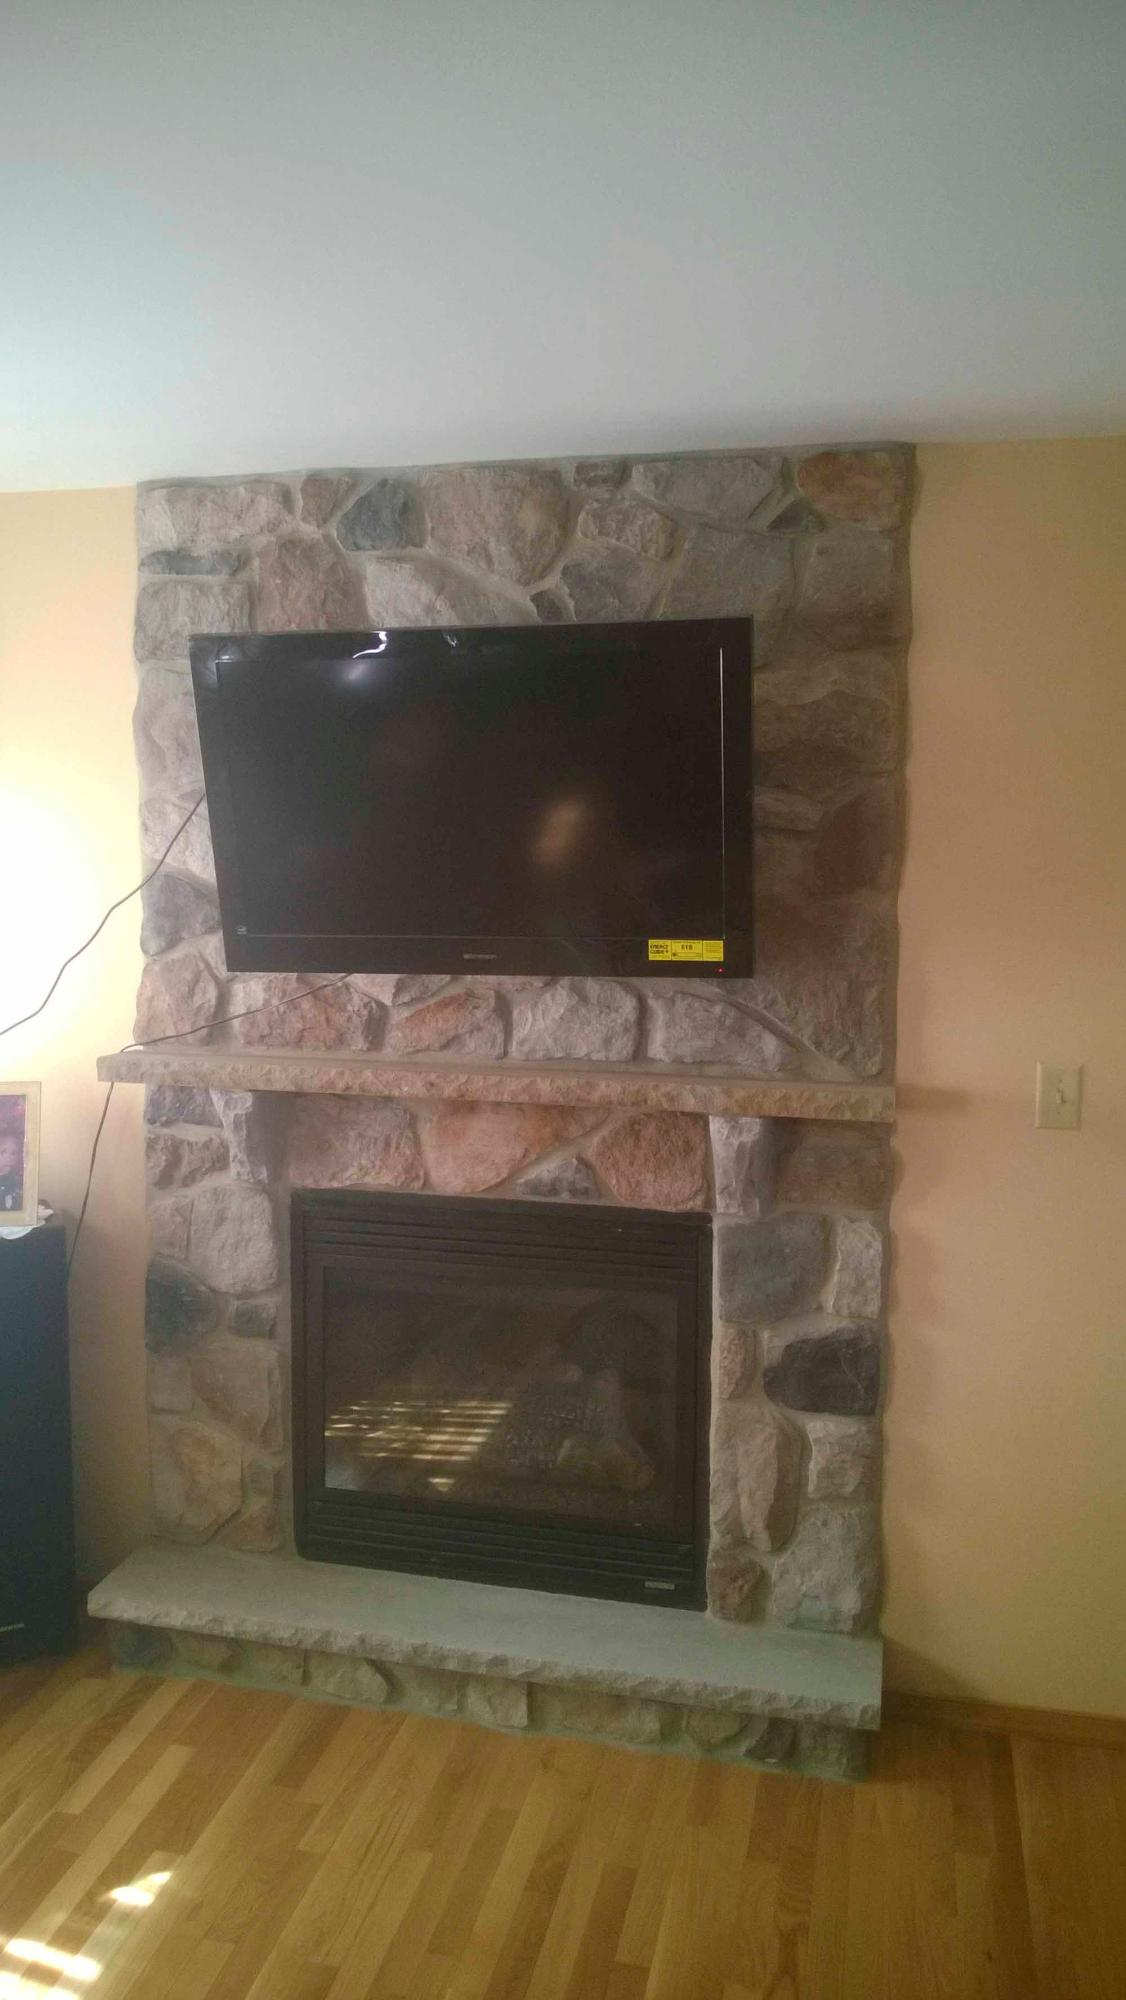 Fireplace facelift: after